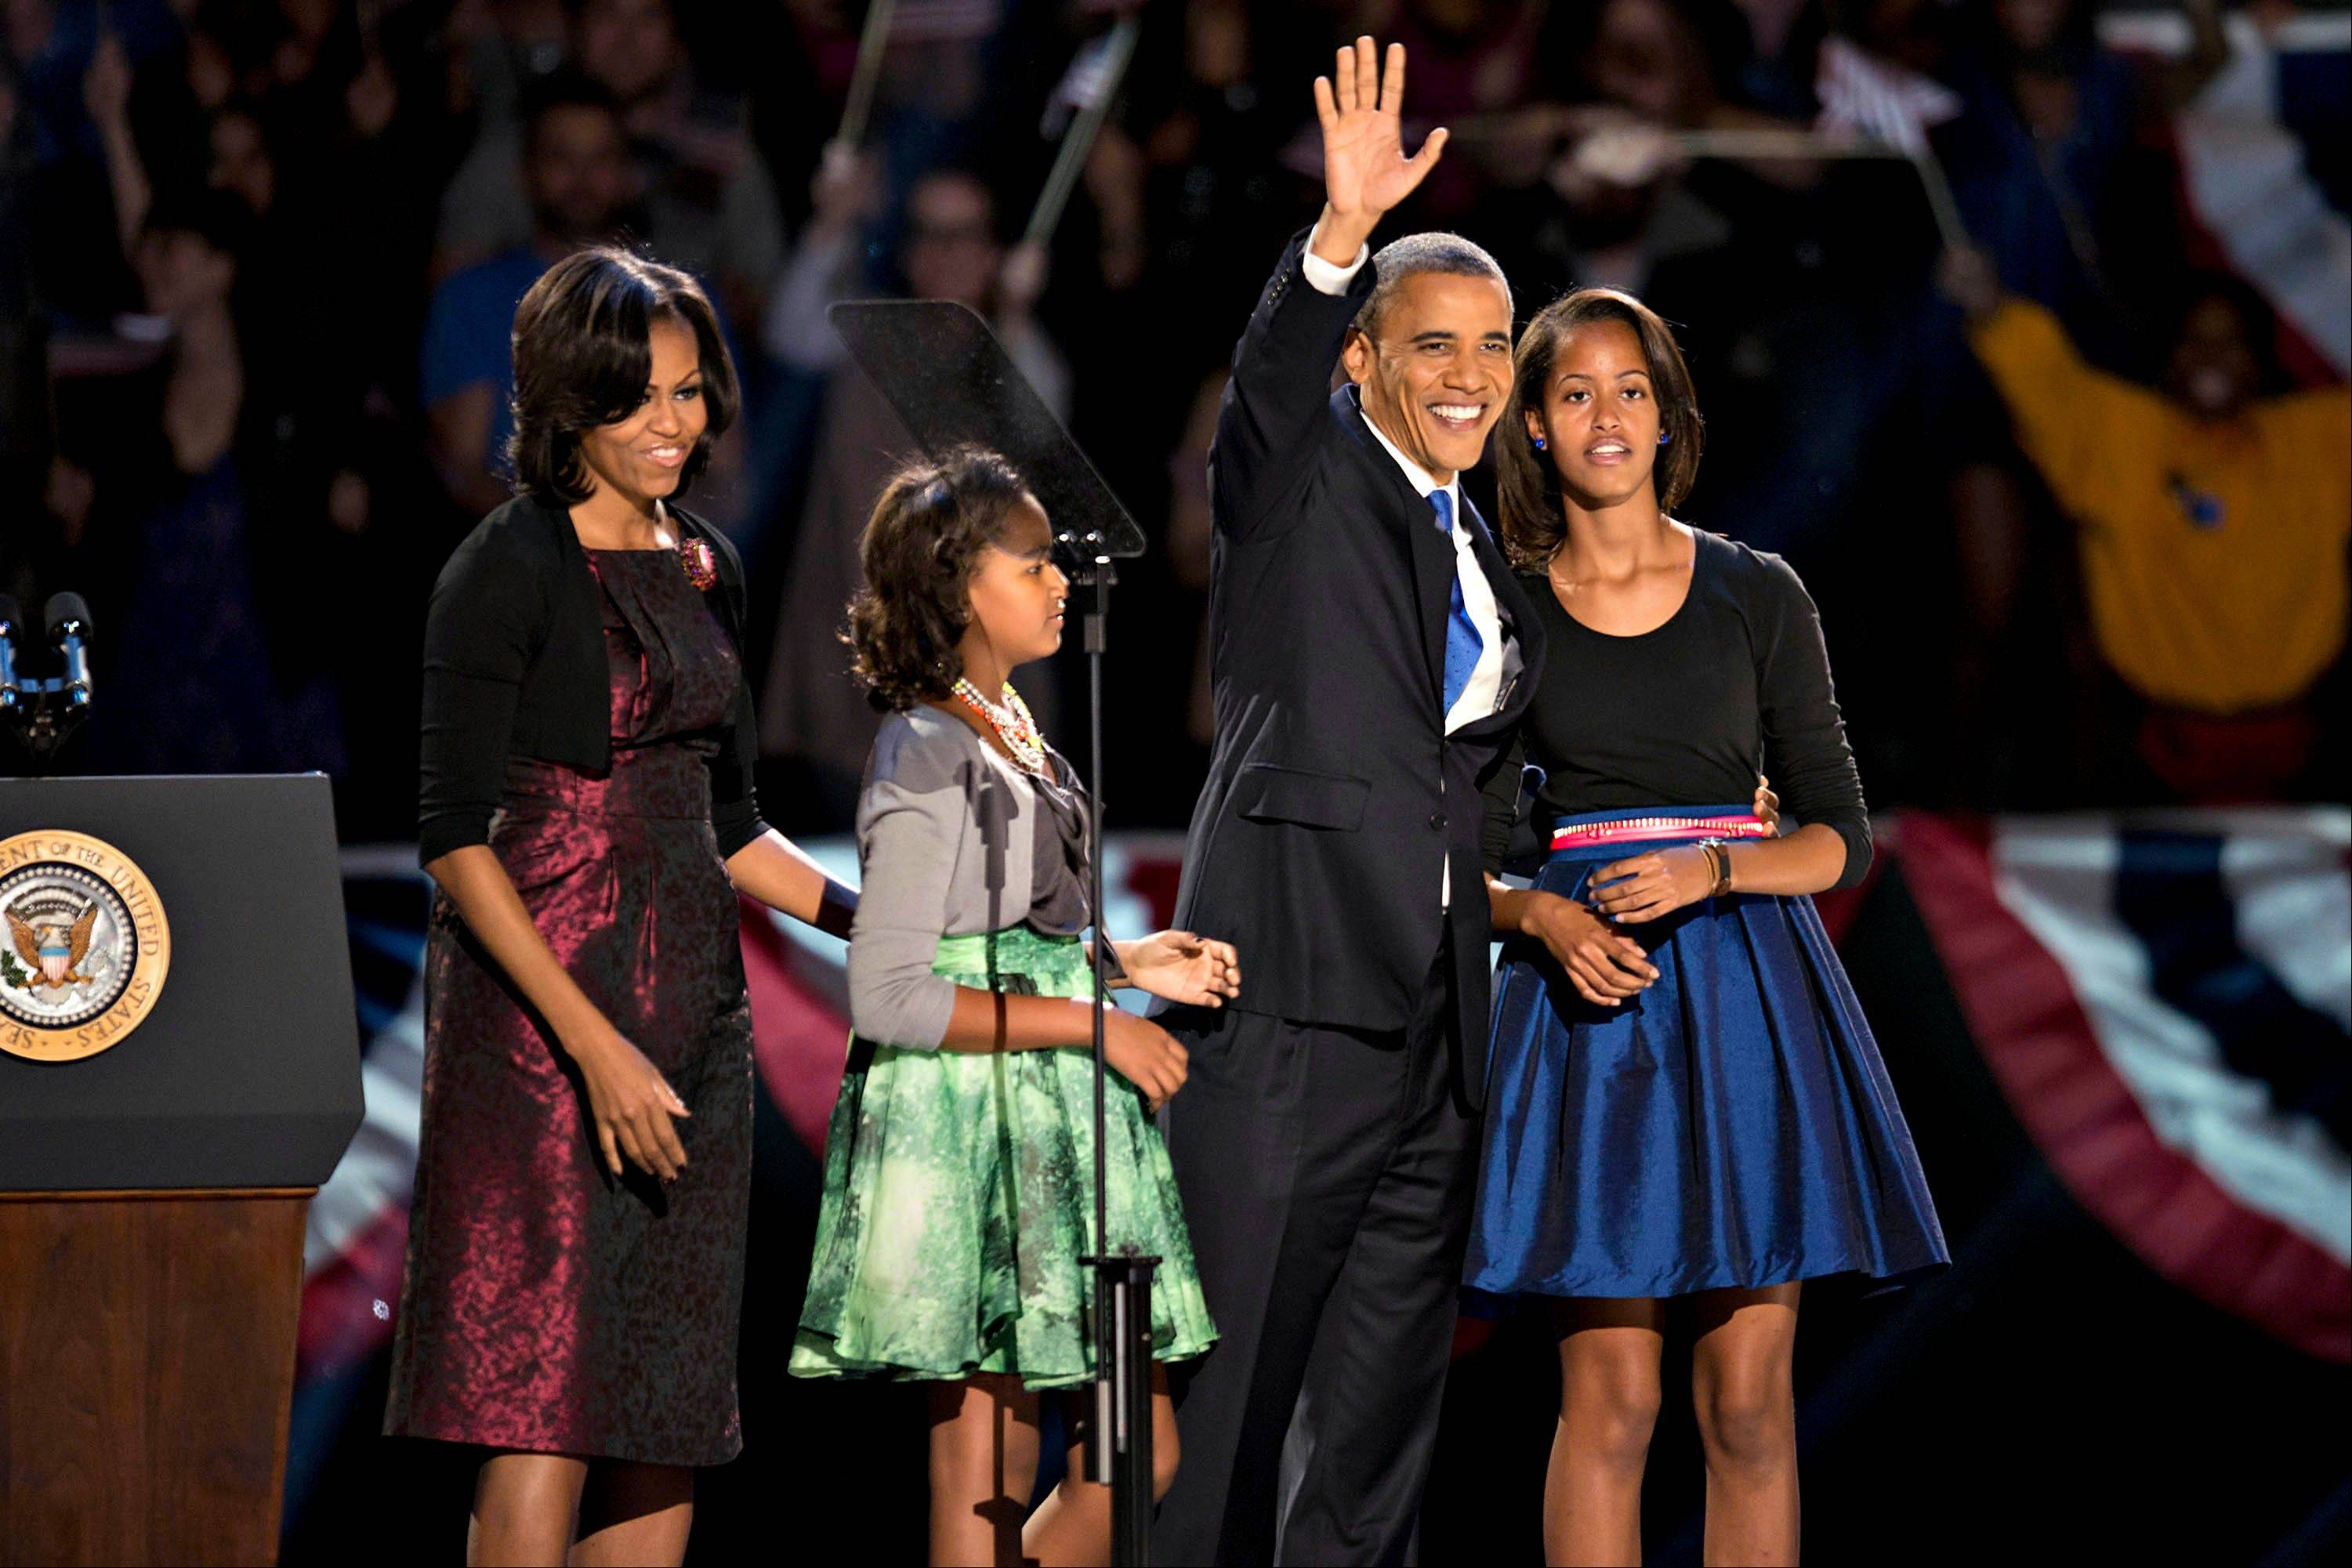 U.S. President Barack Obama stands on stage with his wife Michelle Obama, left, and daughters Sasha, second left, and Malia, right, before making an acceptance speech during an election night rally in Chicago, Illinois, U.S., in the early morning on Wednesday, Nov. 7, 2012. Obama, the post-partisan candidate of hope who became the first black U.S. president, won re-election today by overcoming four years of economic discontent with a mix of political populism and electoral math.